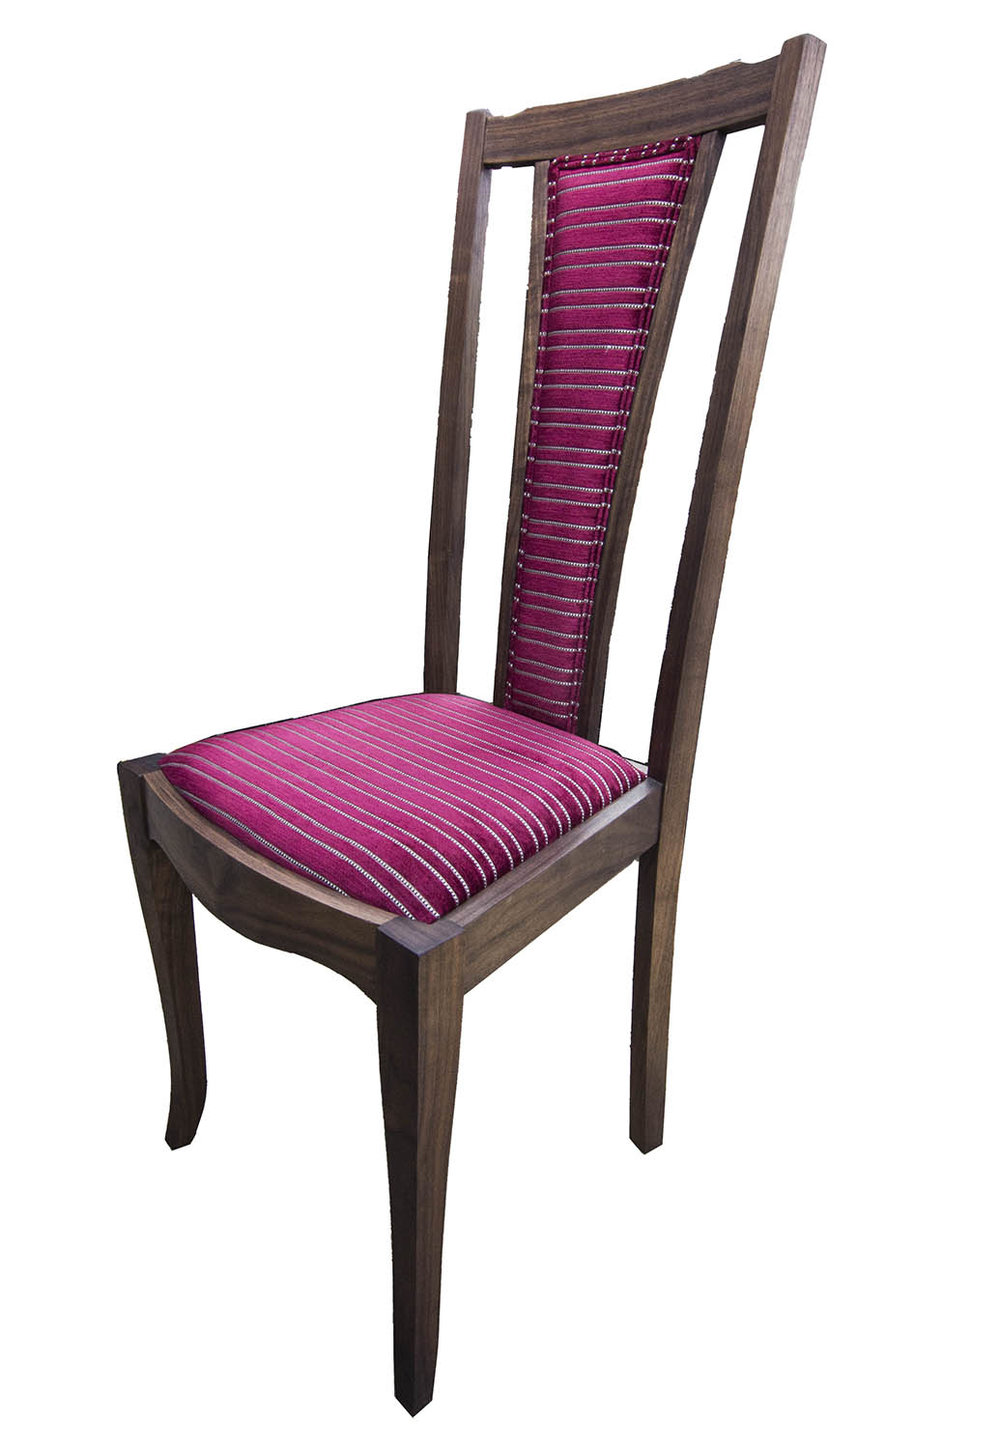 Upholstered dining chair in walnut